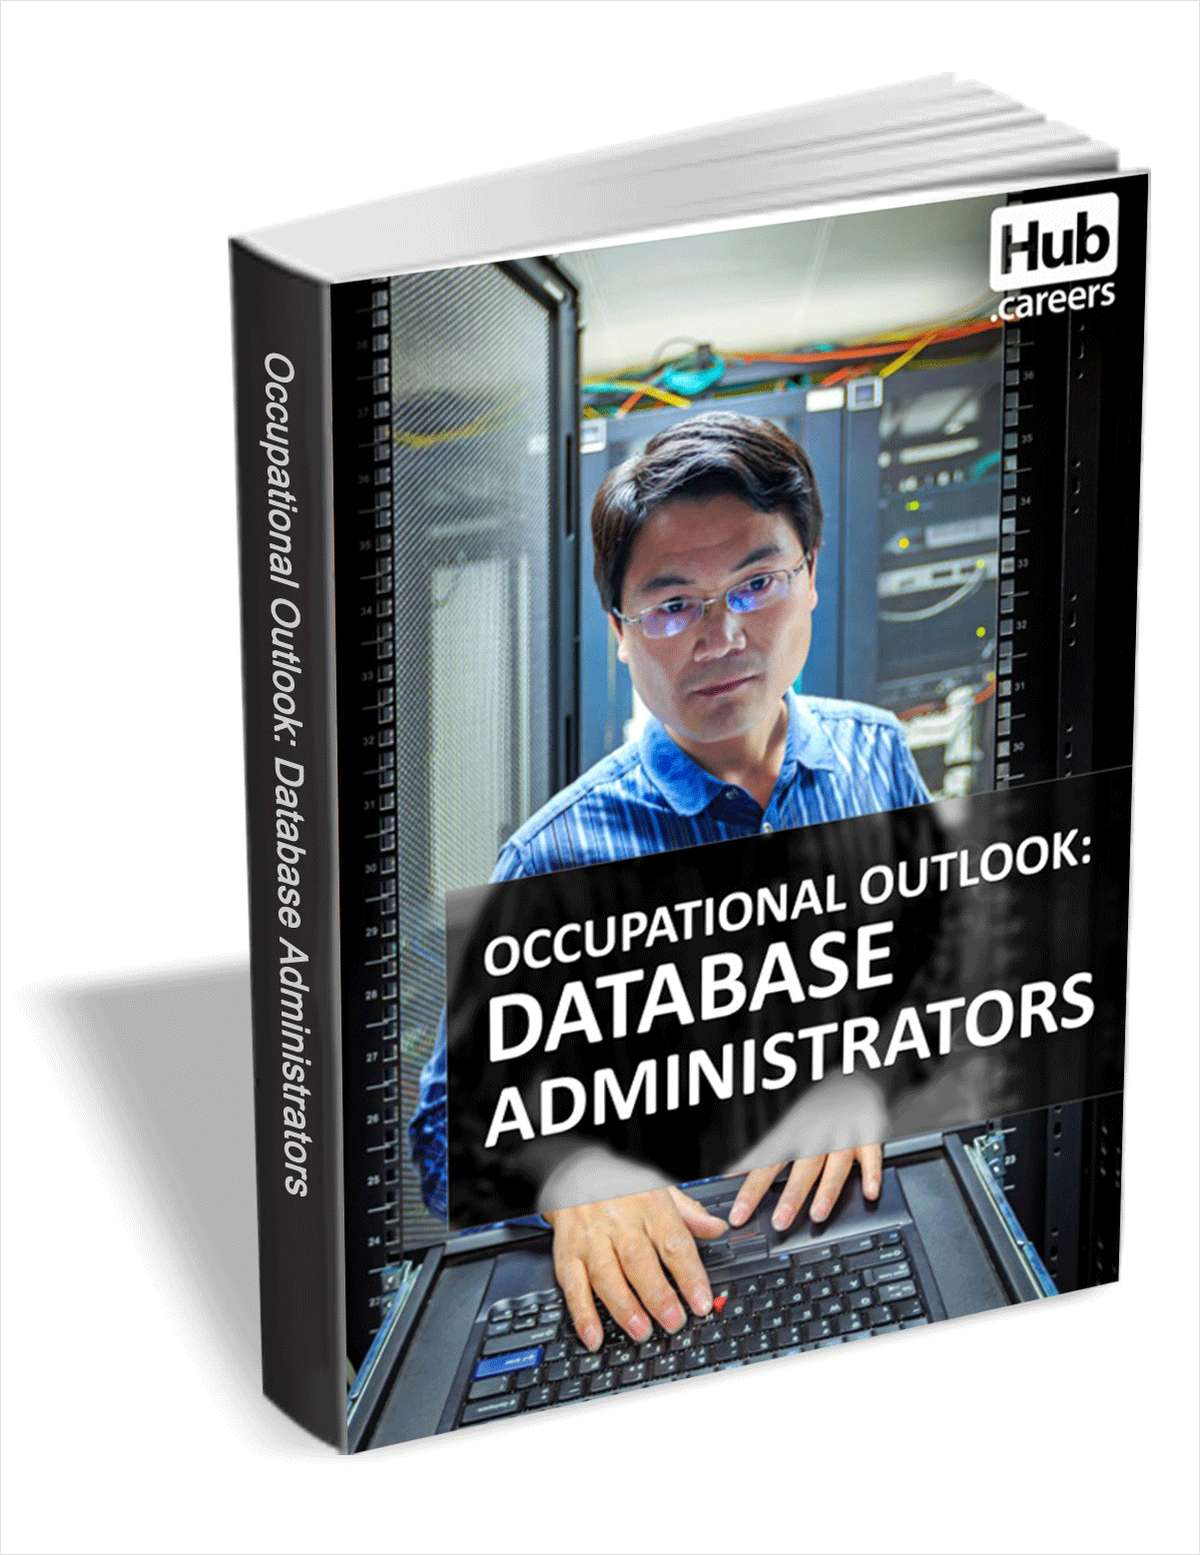 Database Administrators - Occupational Outlook